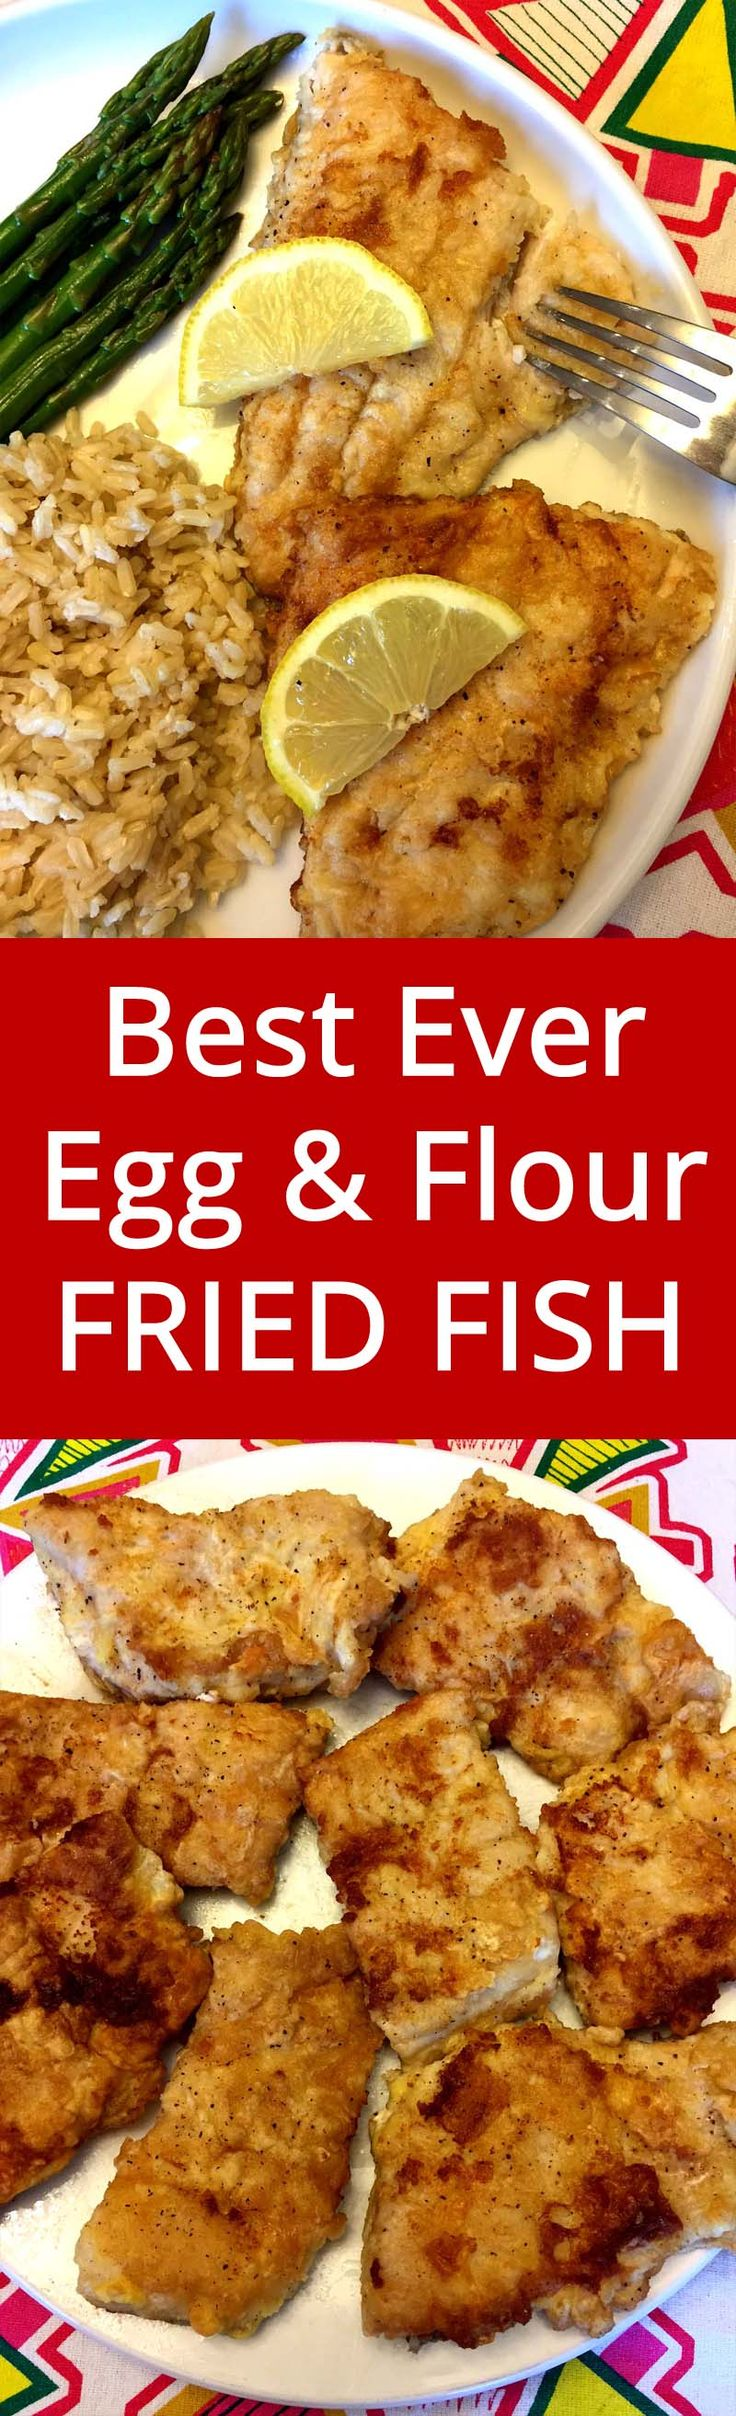 The egg and flour batter is awesome! This simple fish recipe is one of my favorites!